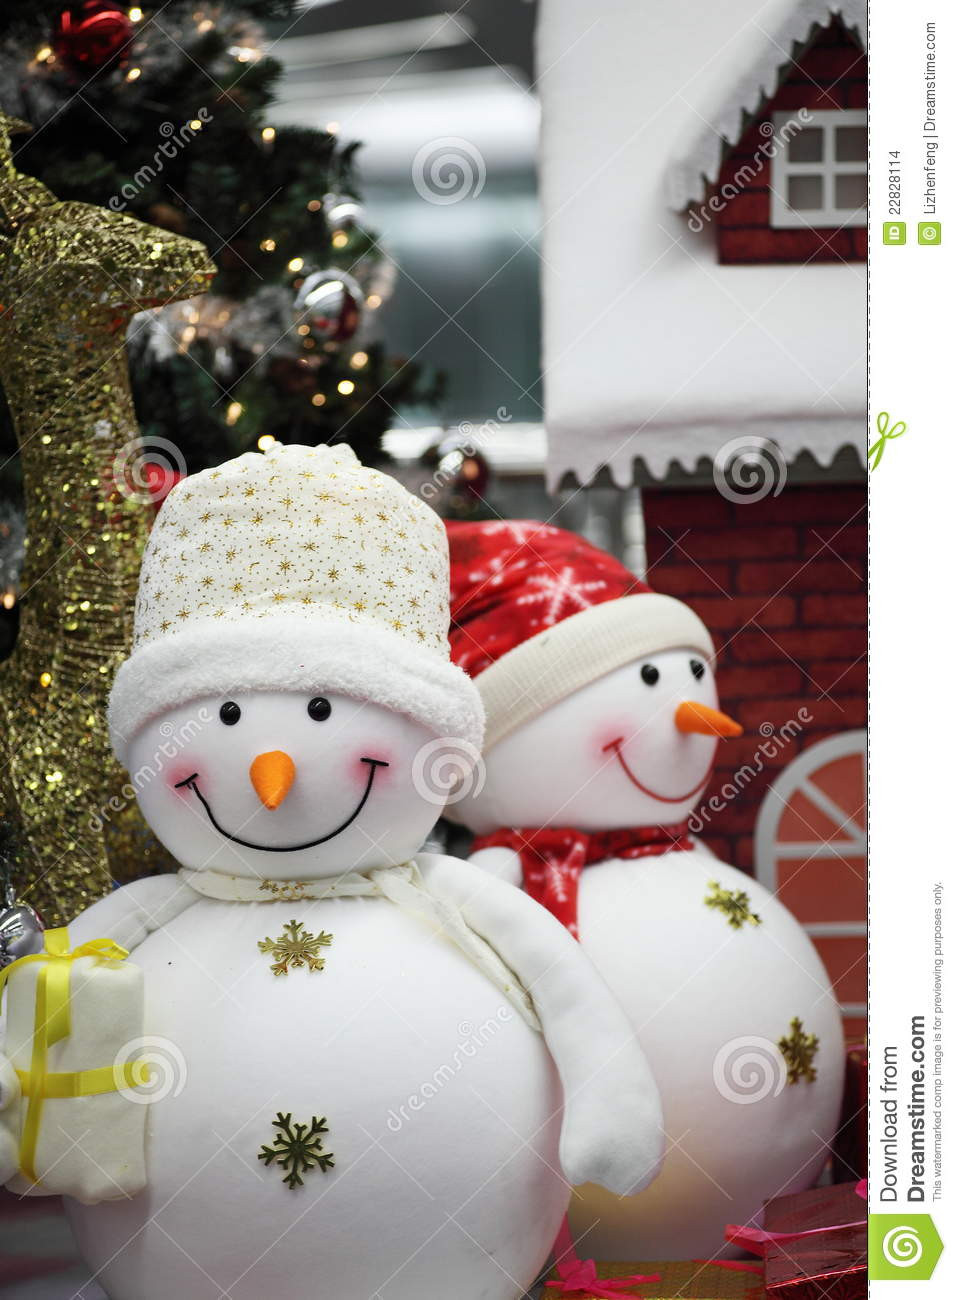 Beautiful Snowman for Christmas Decoration Stock Image Christmas Snowman Decorations Of Adorable 41 Models Christmas Snowman Decorations